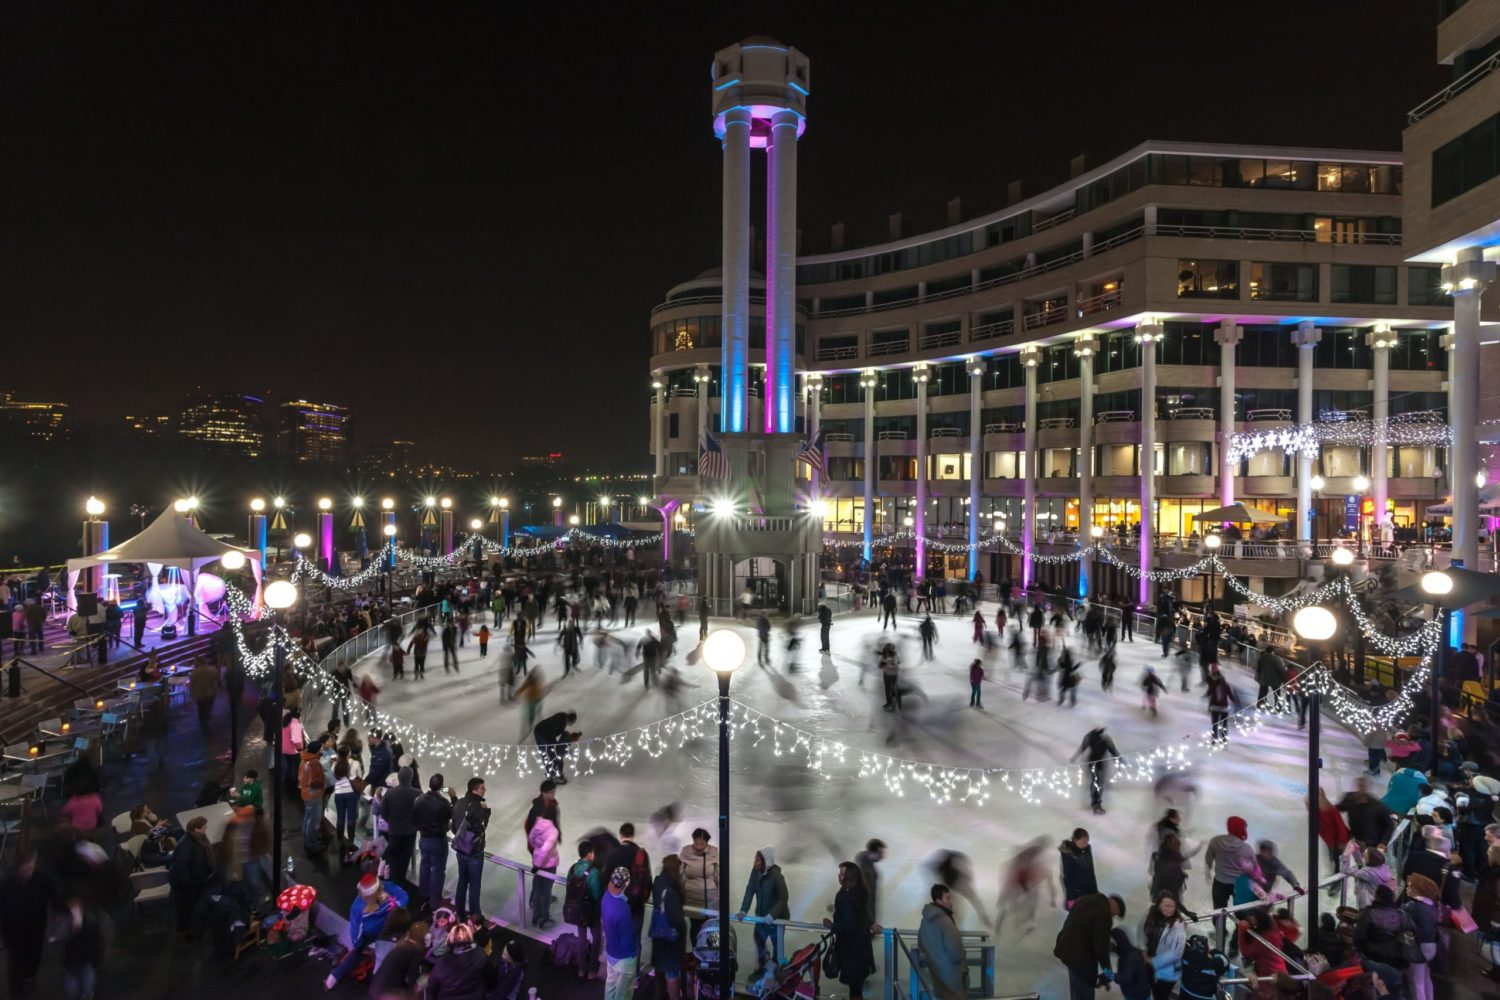 Washington Harbour Ice Skating